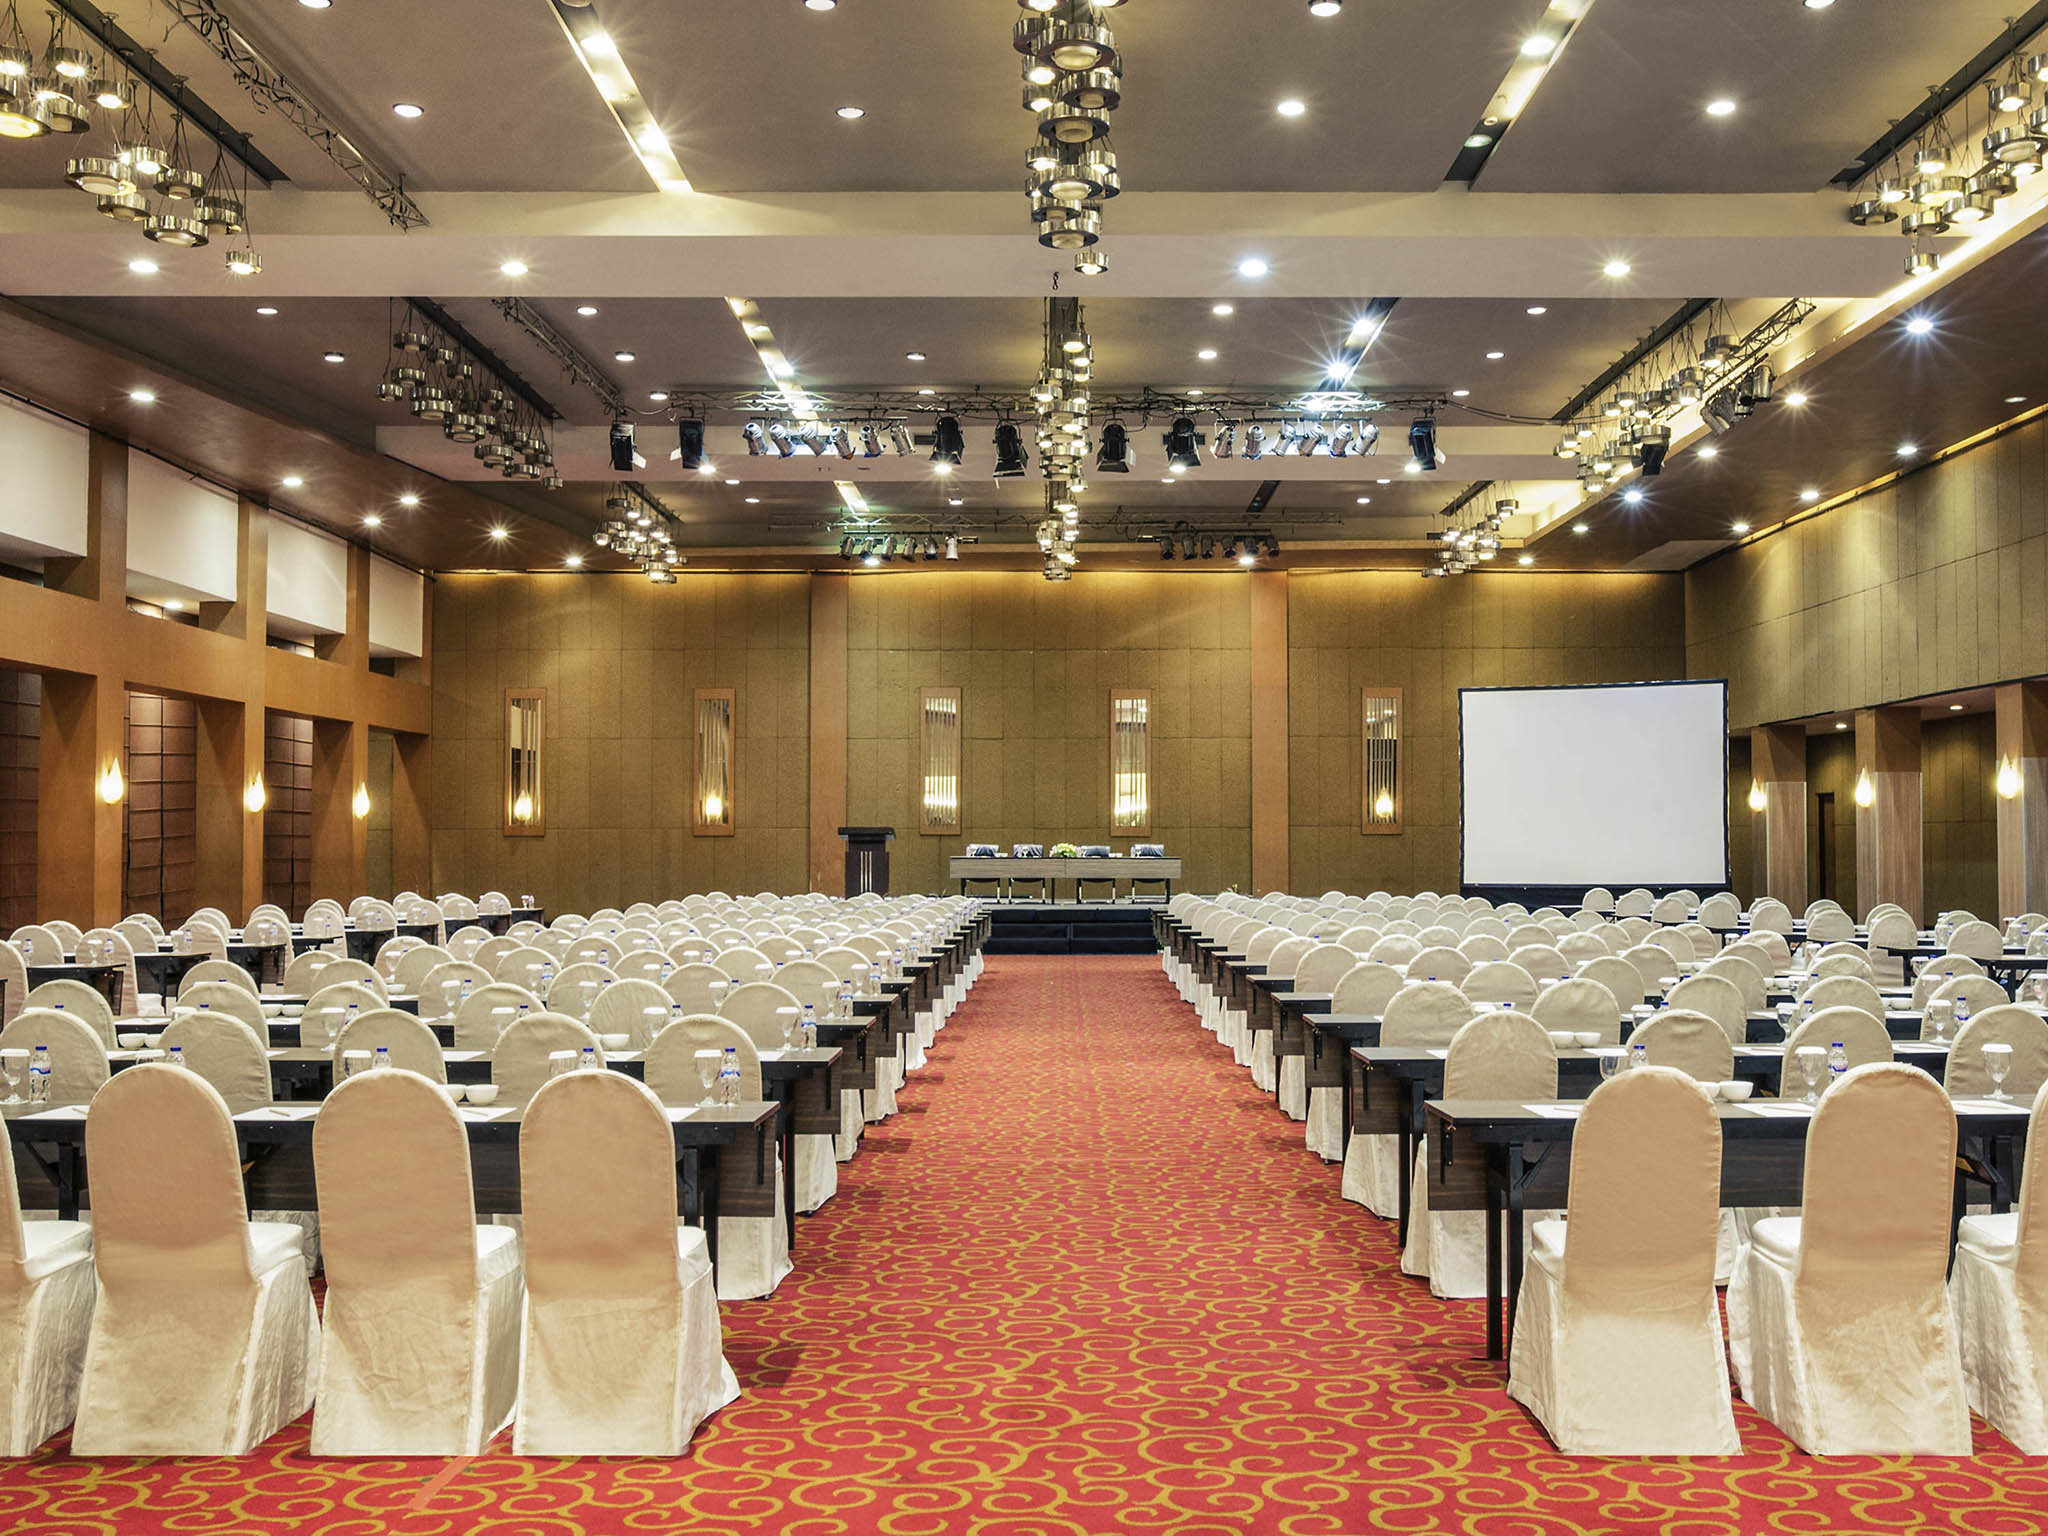 Hotel in surabaya mercure surabaya meetings and events mercure surabaya junglespirit Gallery